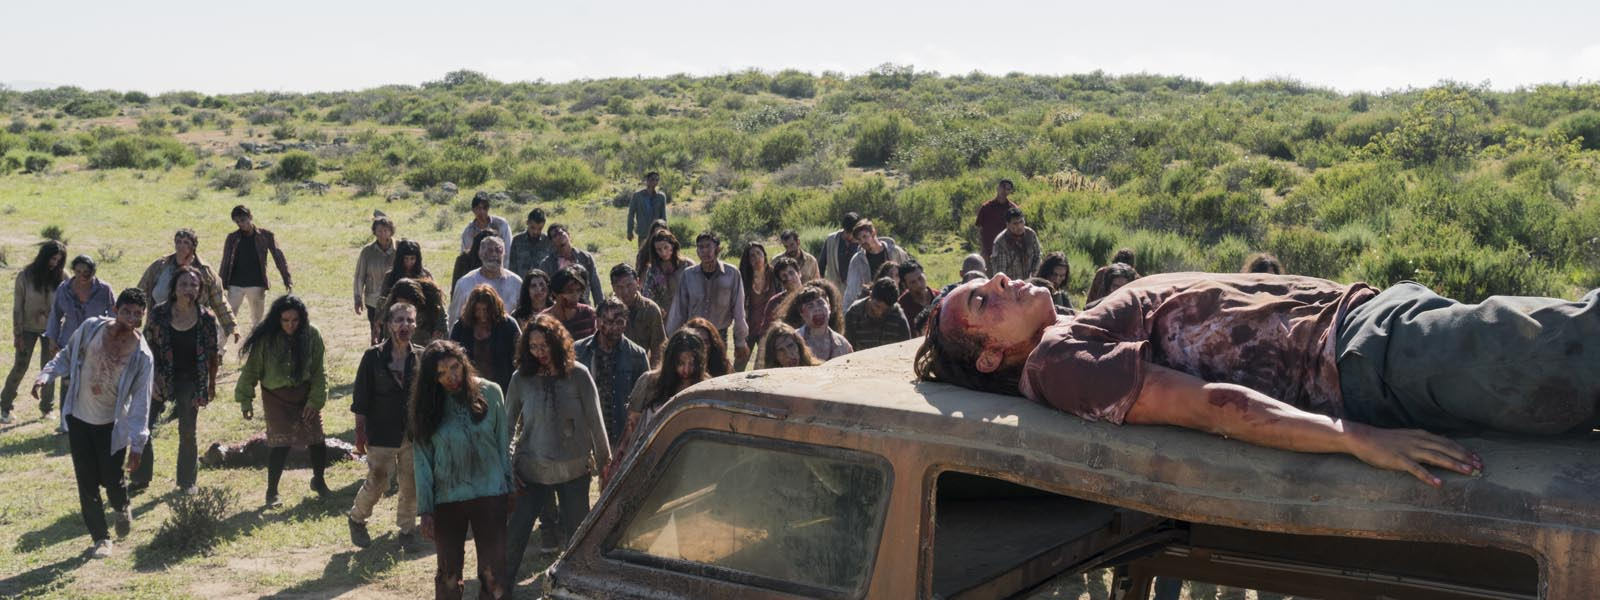 fear-the-walking-dead-episode-208-nick-dillane-post-800×600